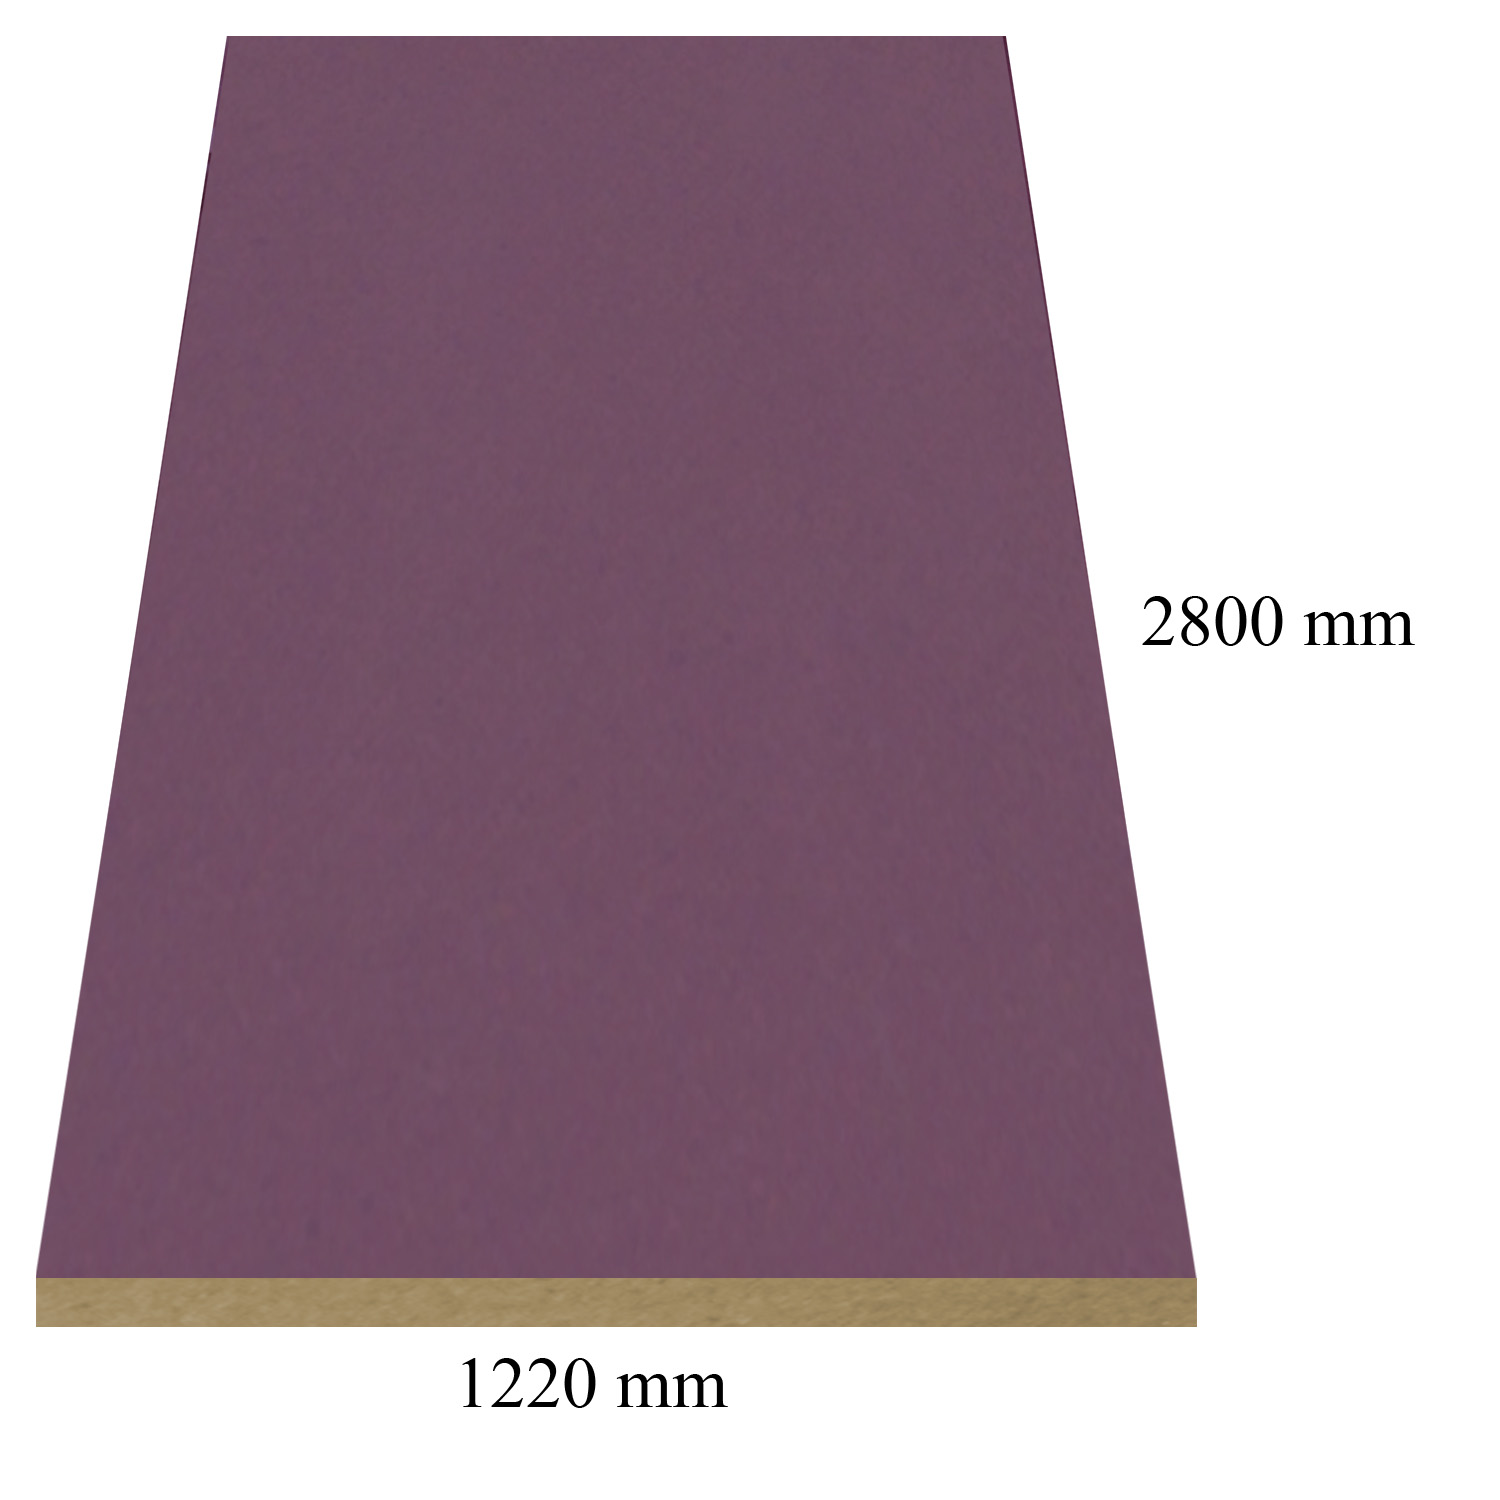 493 Light purple high gloss - PVC coated 18 mm MDF